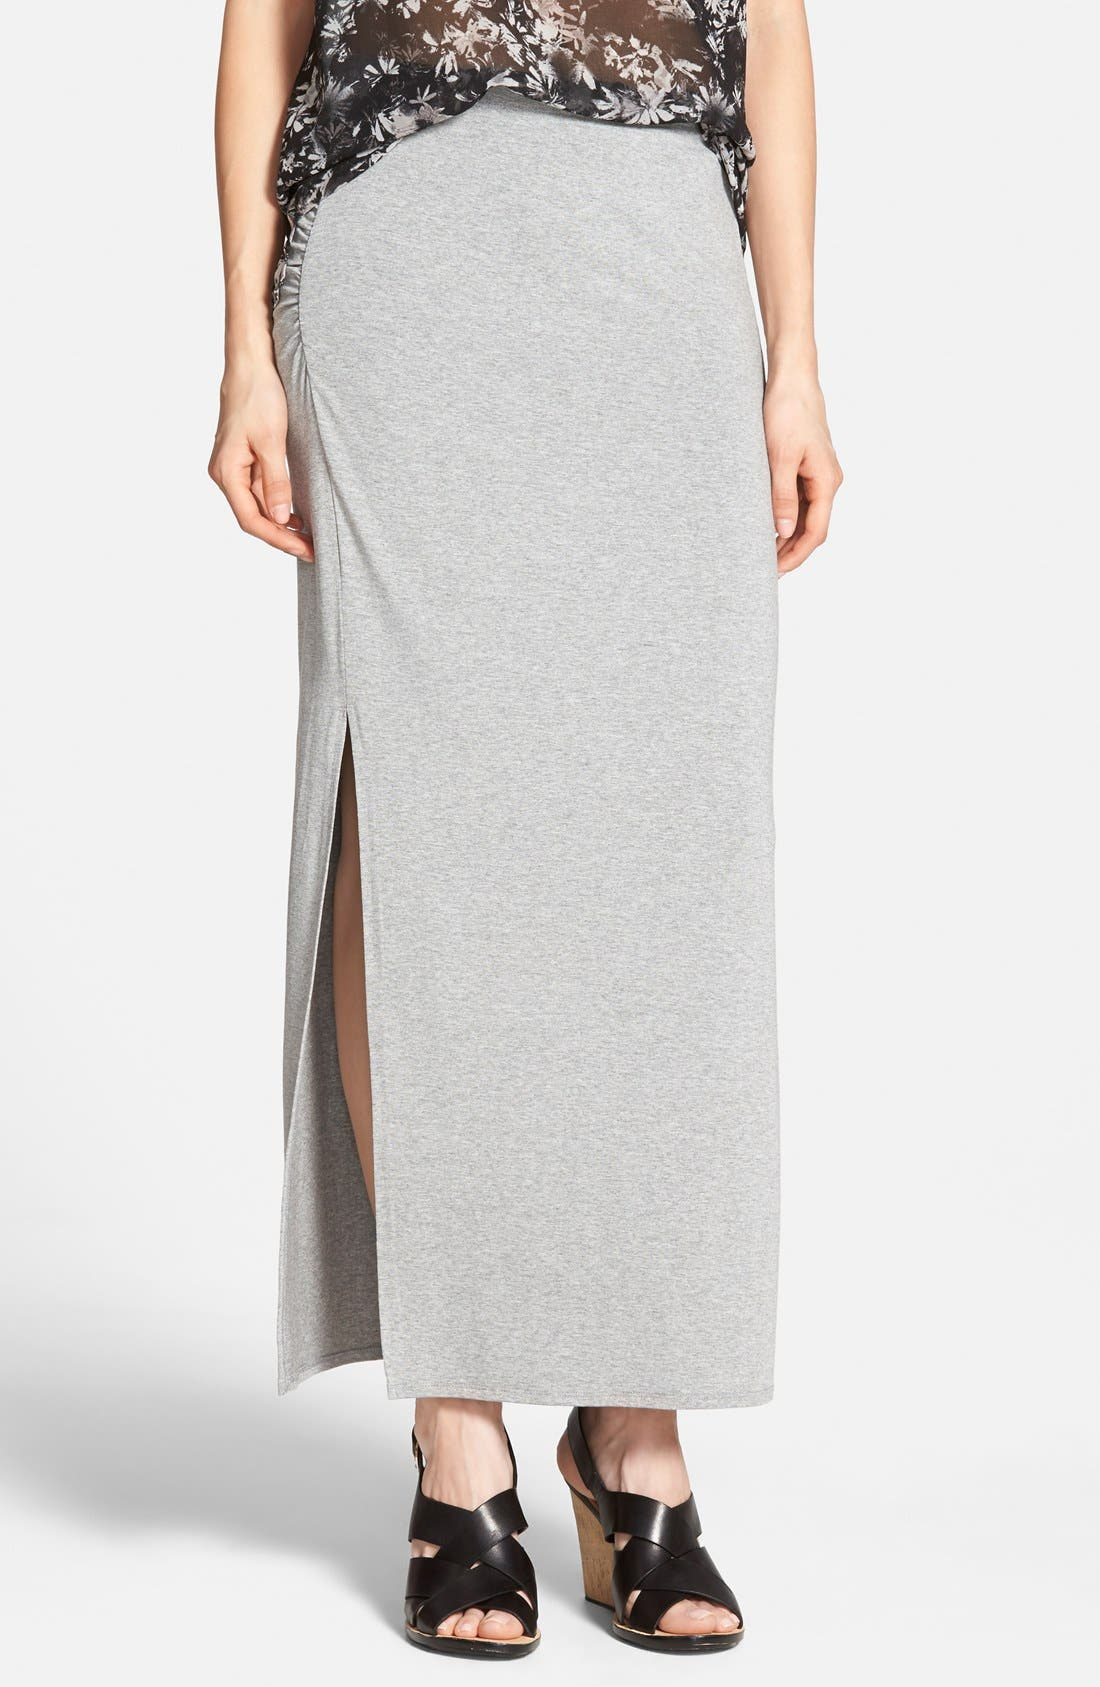 Alternate Image 1 Selected - Vince Camuto Side Slit Maxi Skirt